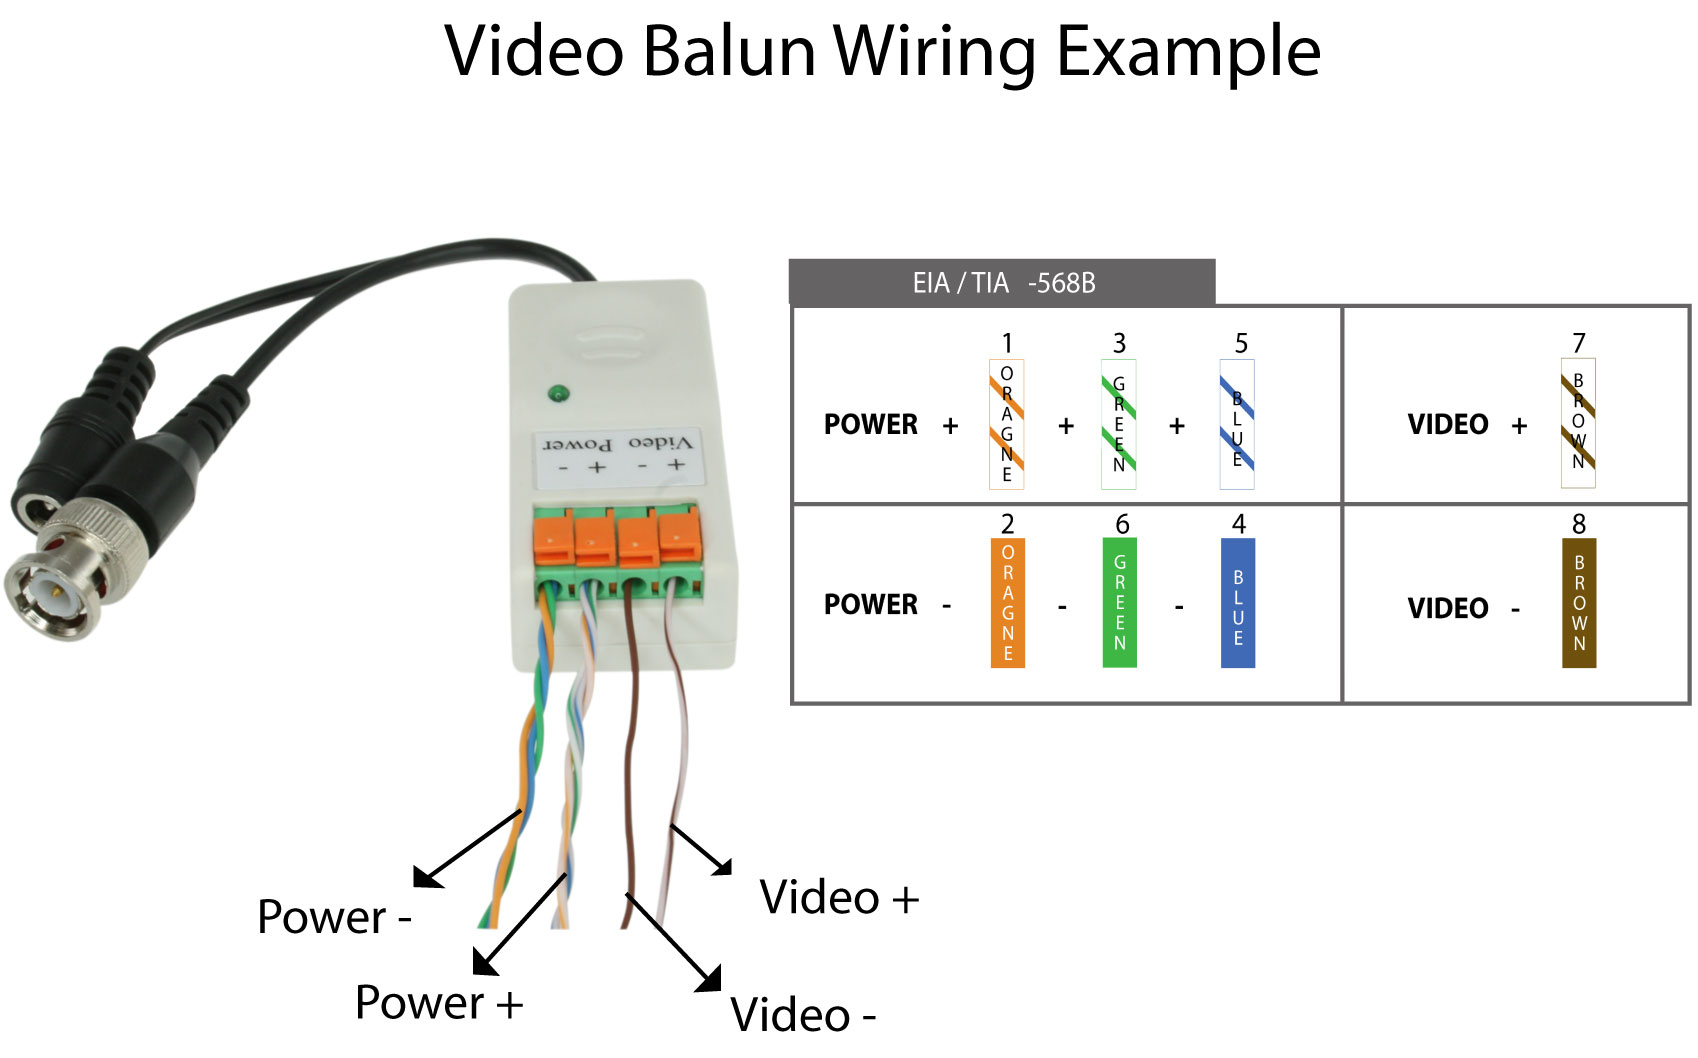 Usb Serial Rj45 Wiring Diagram | Wiring Diagram - Usb Serial Cable Wiring Diagram